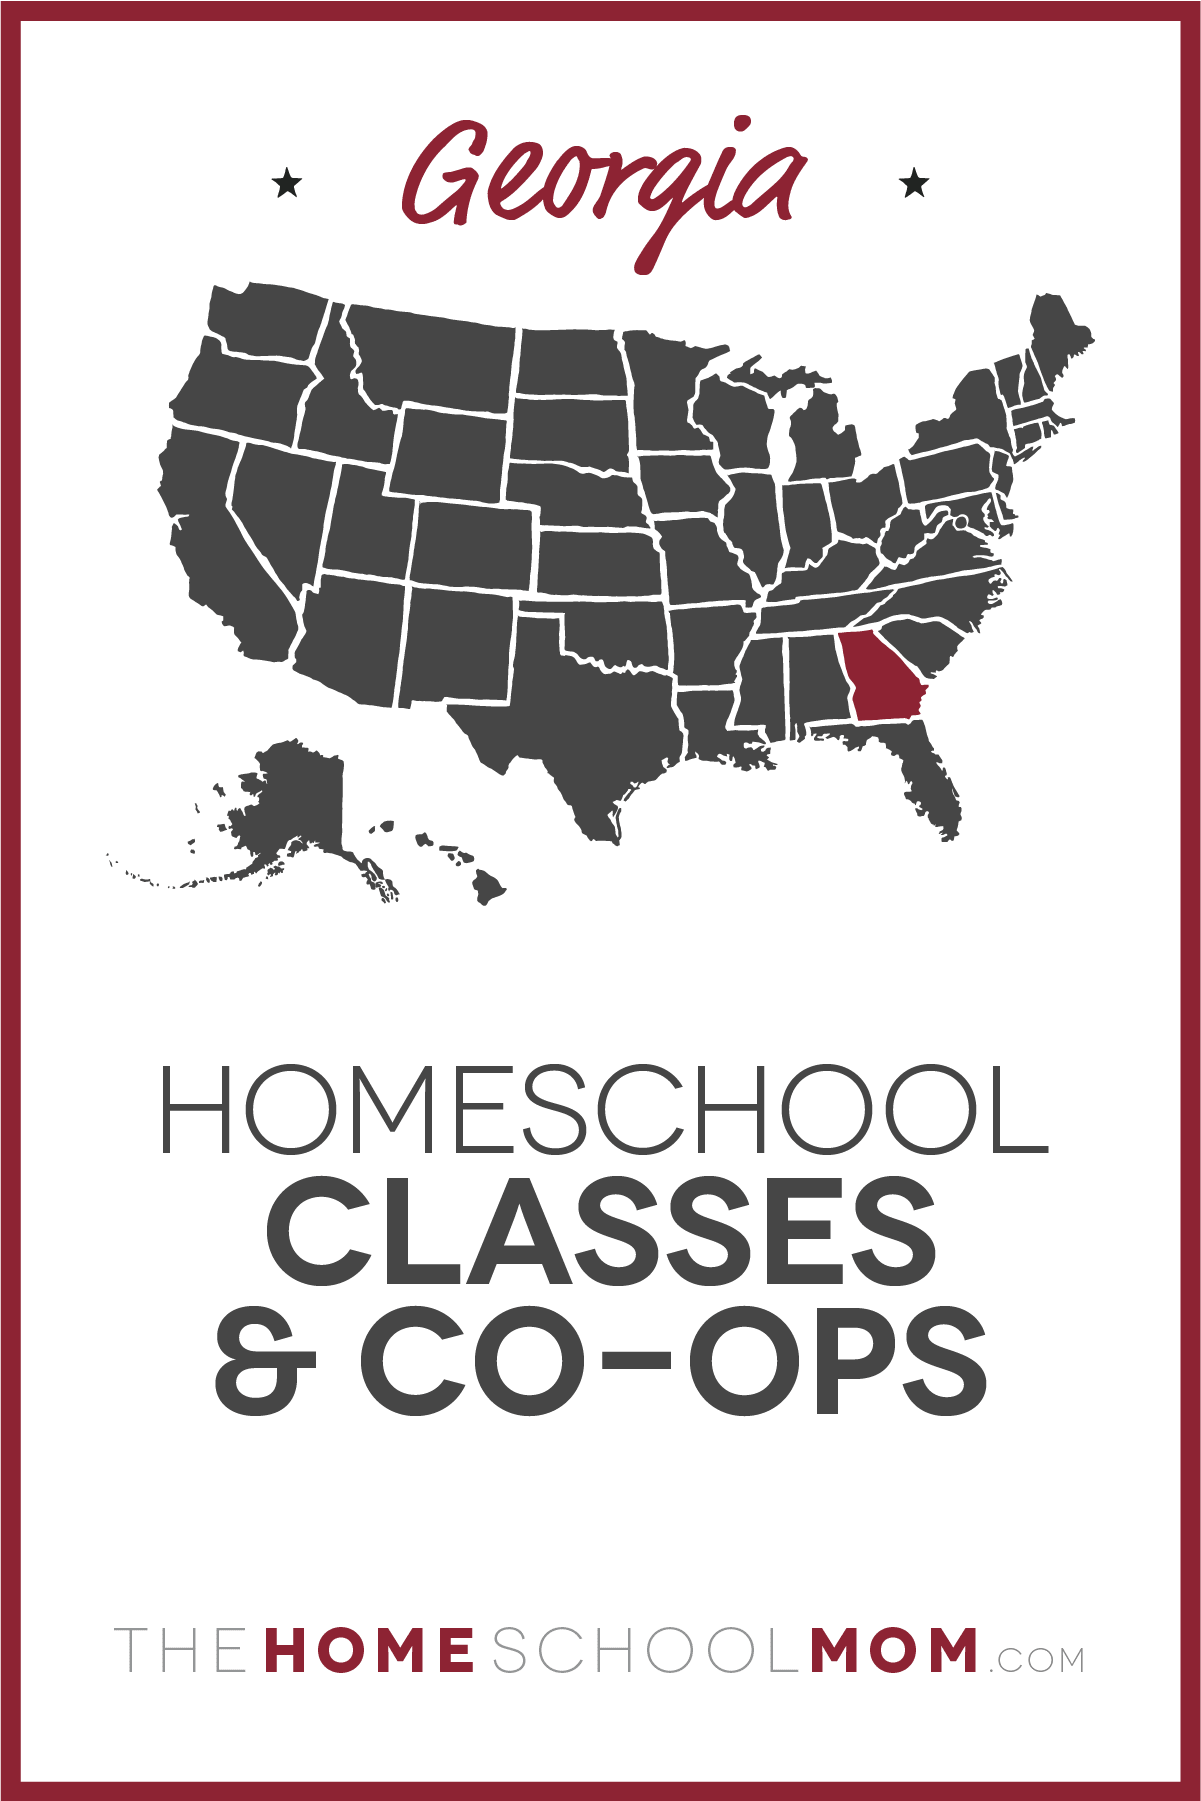 Map of US with Georgia highlighted in red and text Georgia Homeschool Classes & Co-ops – TheHomeSchoolMom.com